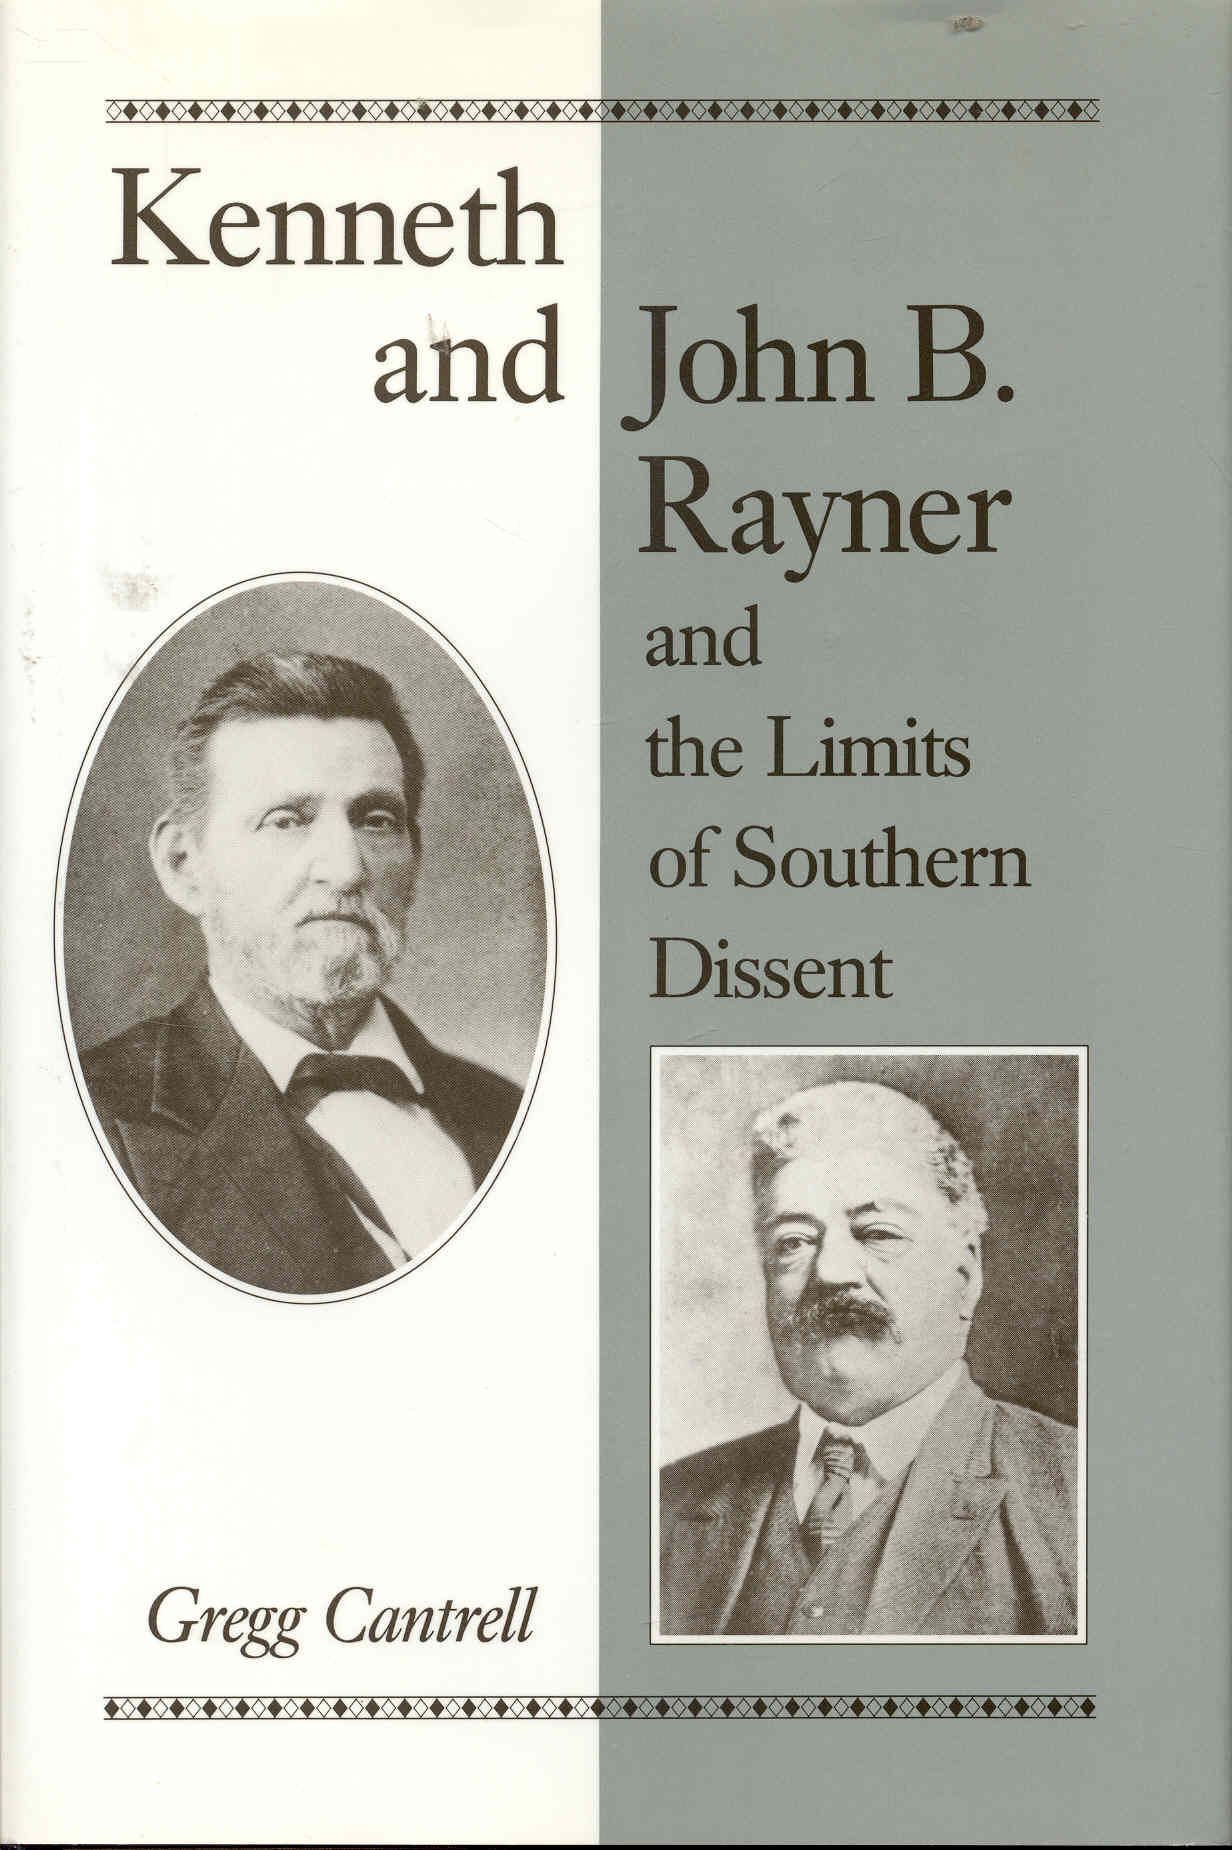 Image for Kenneth and John B. Rayner and the Limits of Southern Dissent